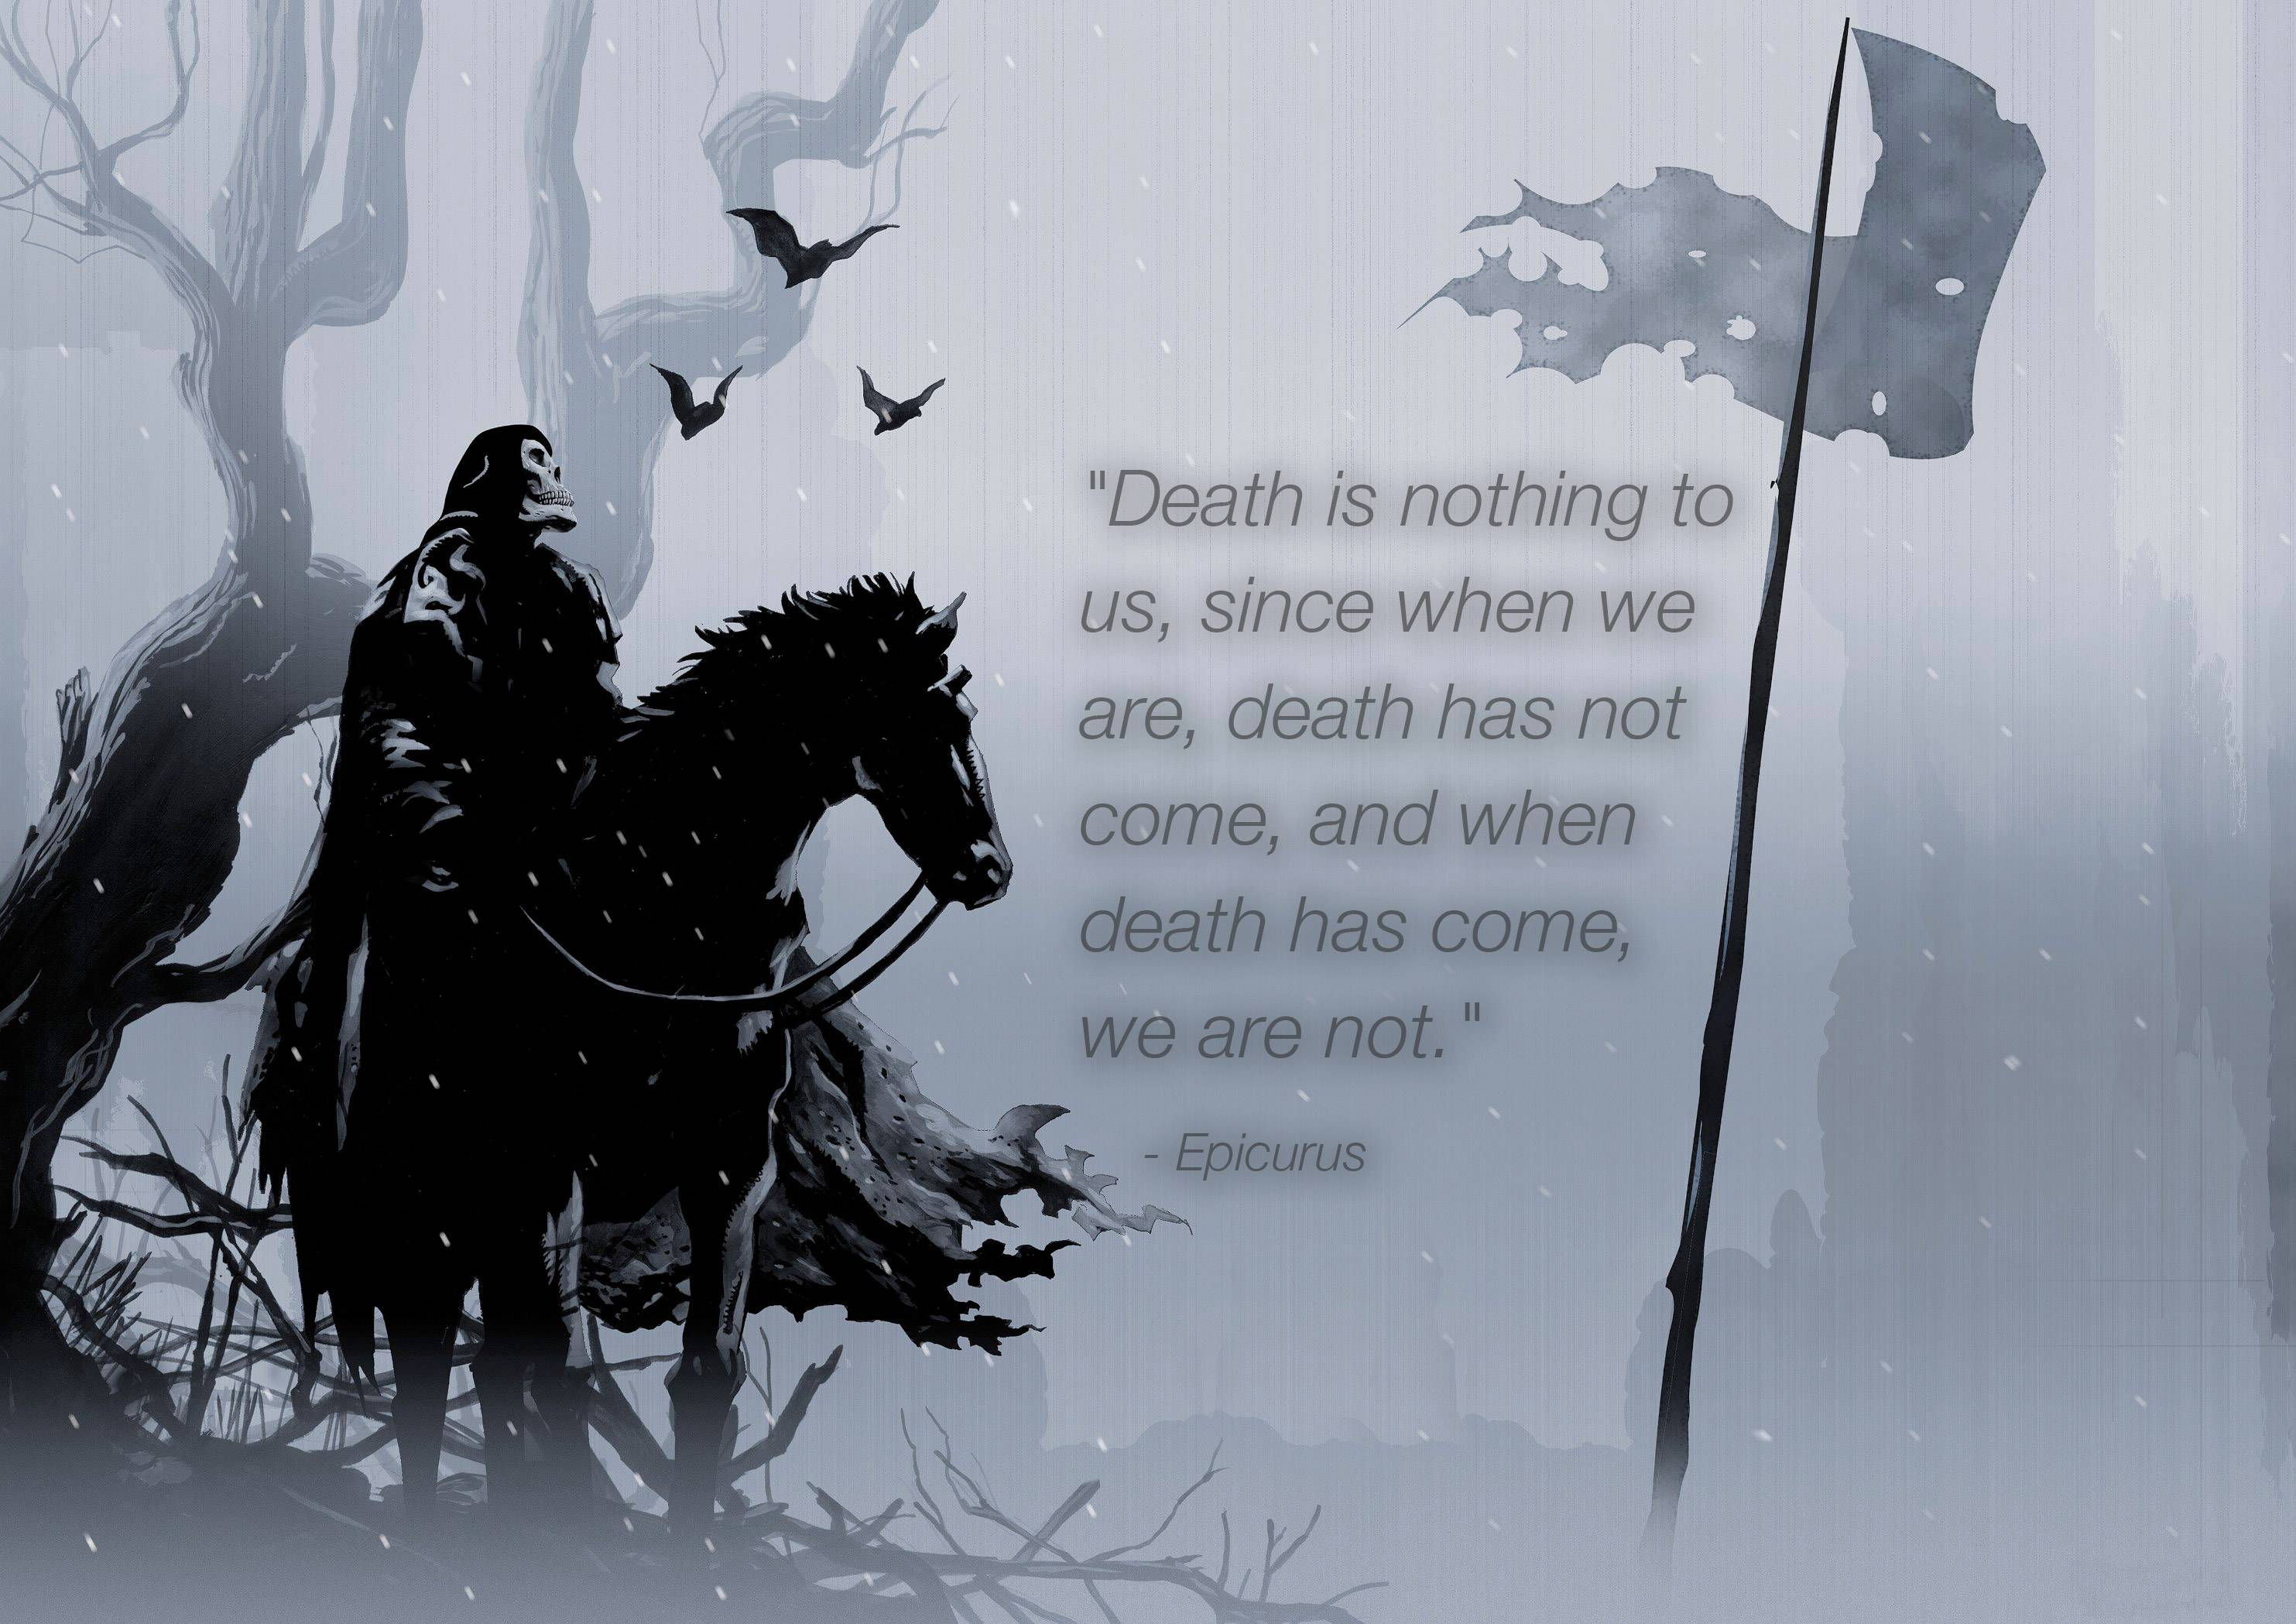 """Death is nothing to us, since when we are, death has not come, and when death has come, we are not."" – Epicurus [2966×2098]"